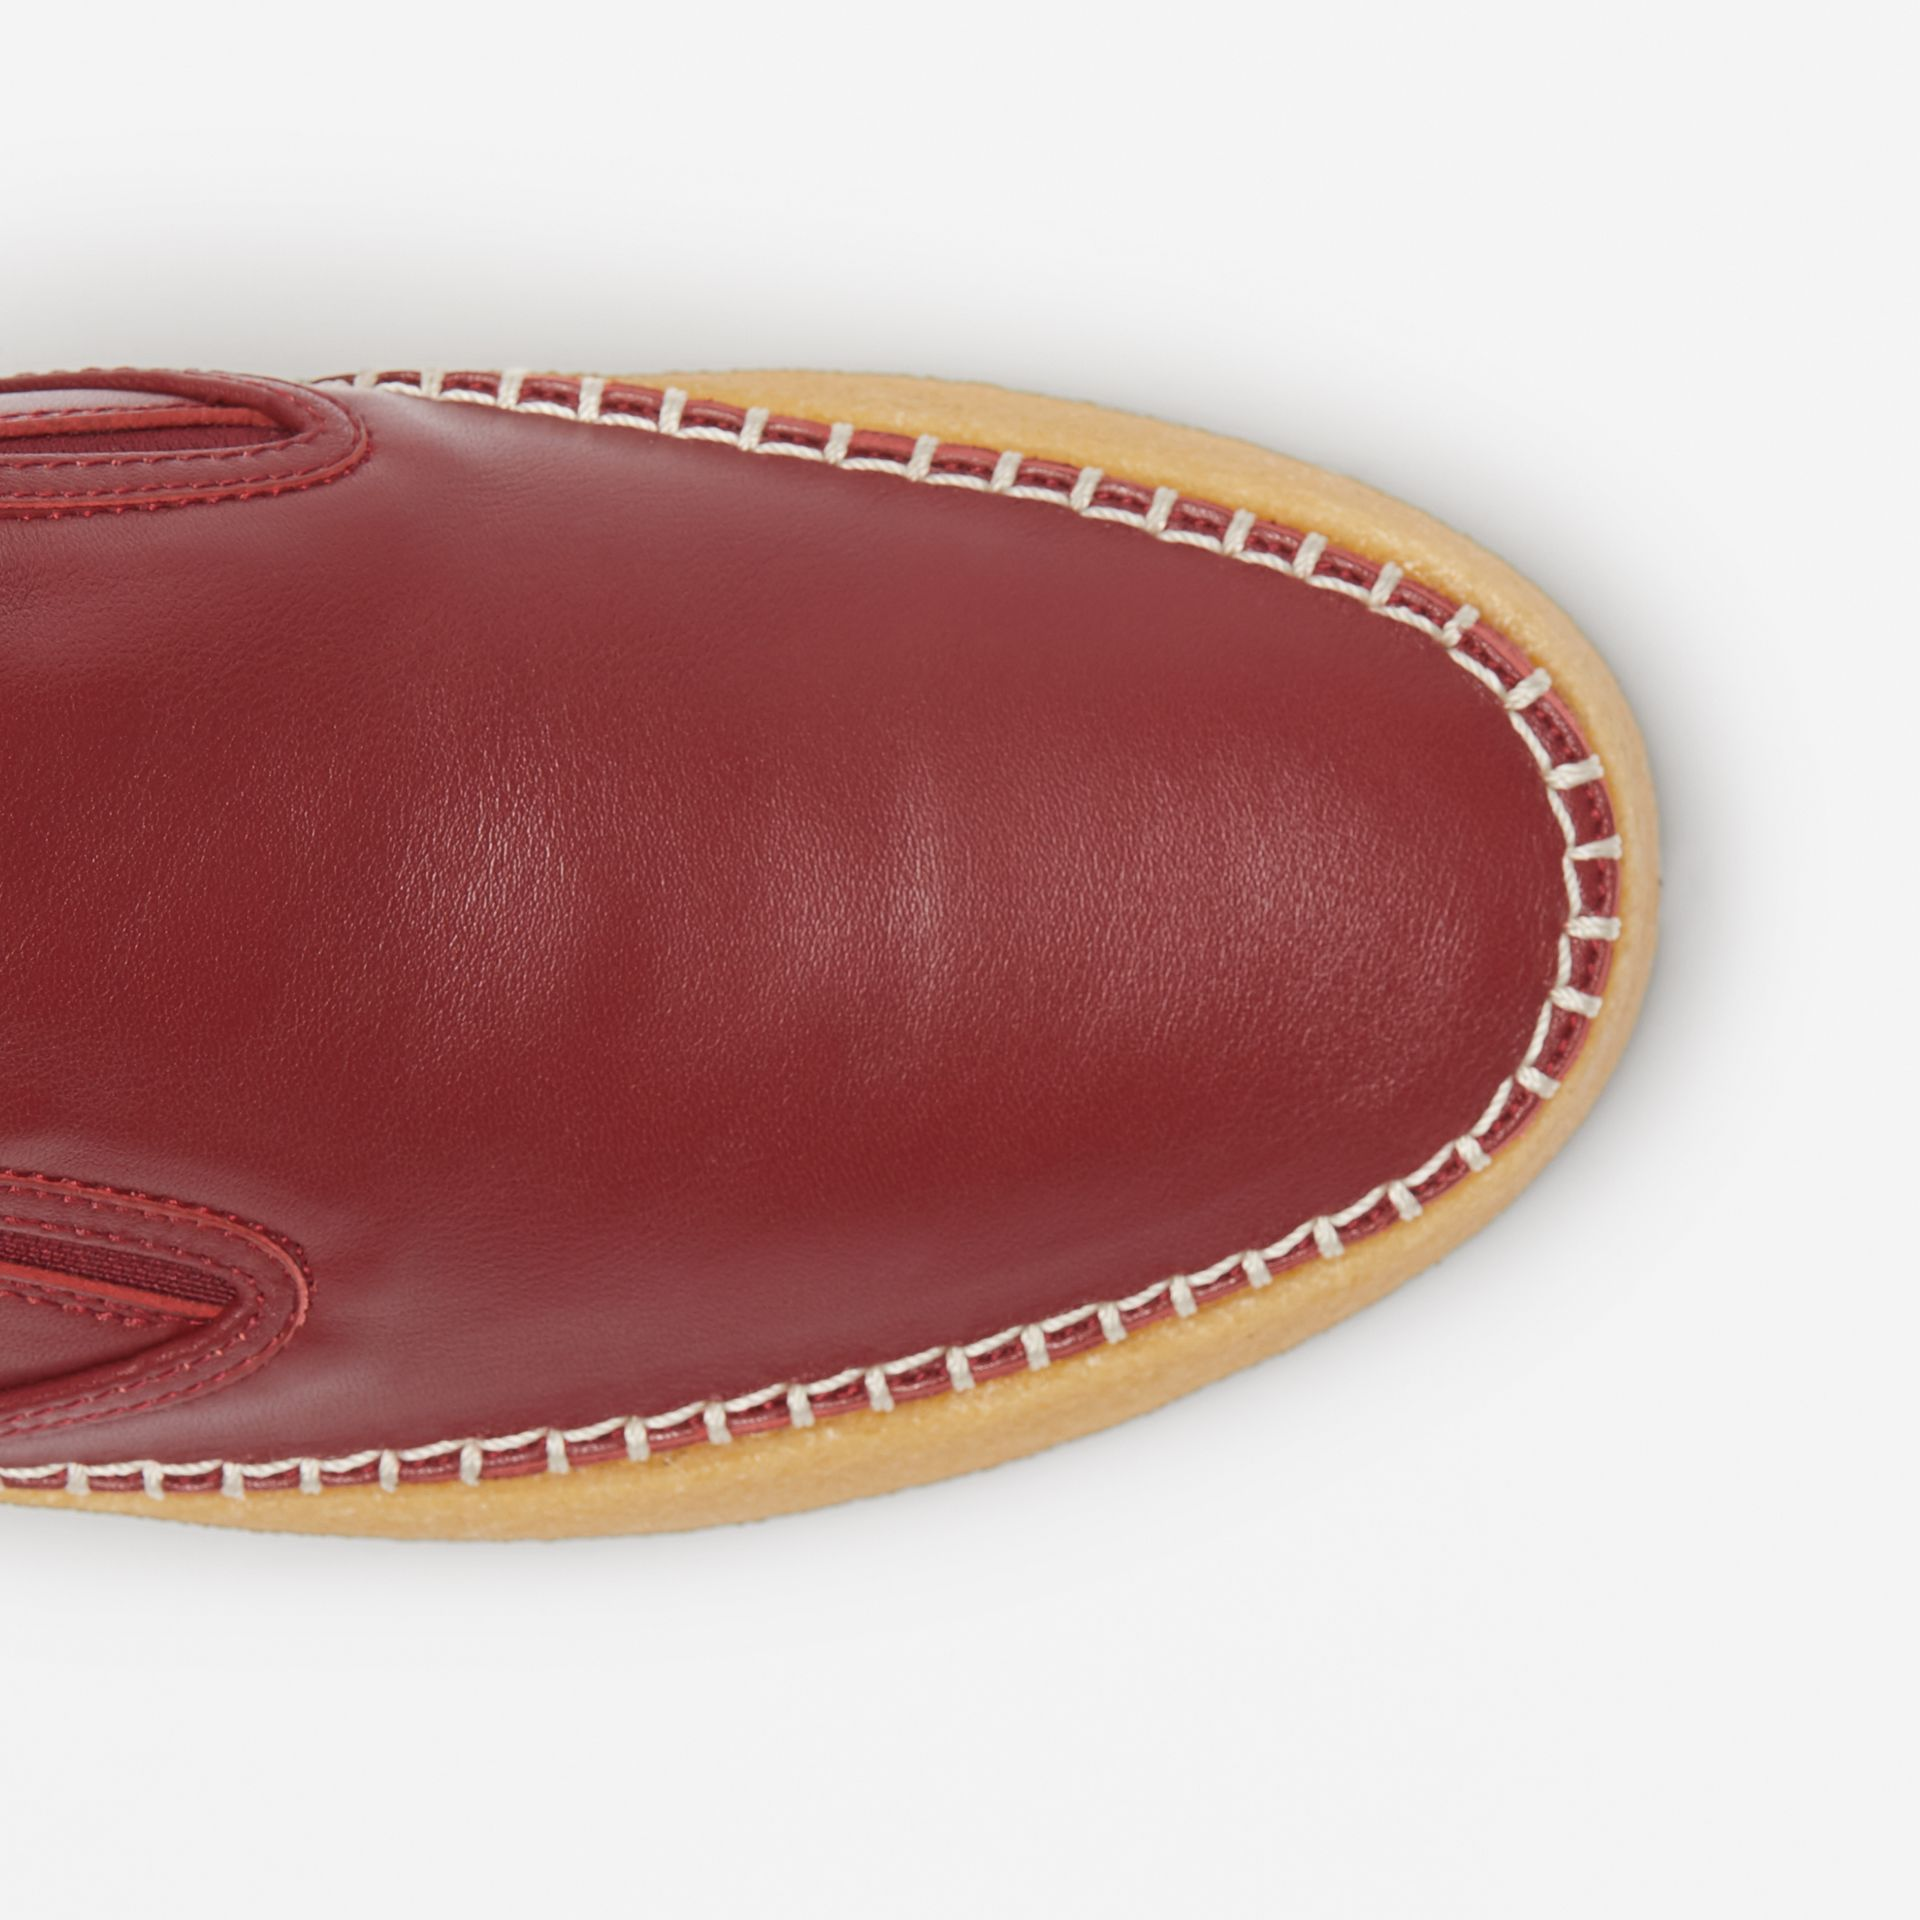 Leather Slip-on Sneakers in Bordeaux - Women | Burberry United States - gallery image 1